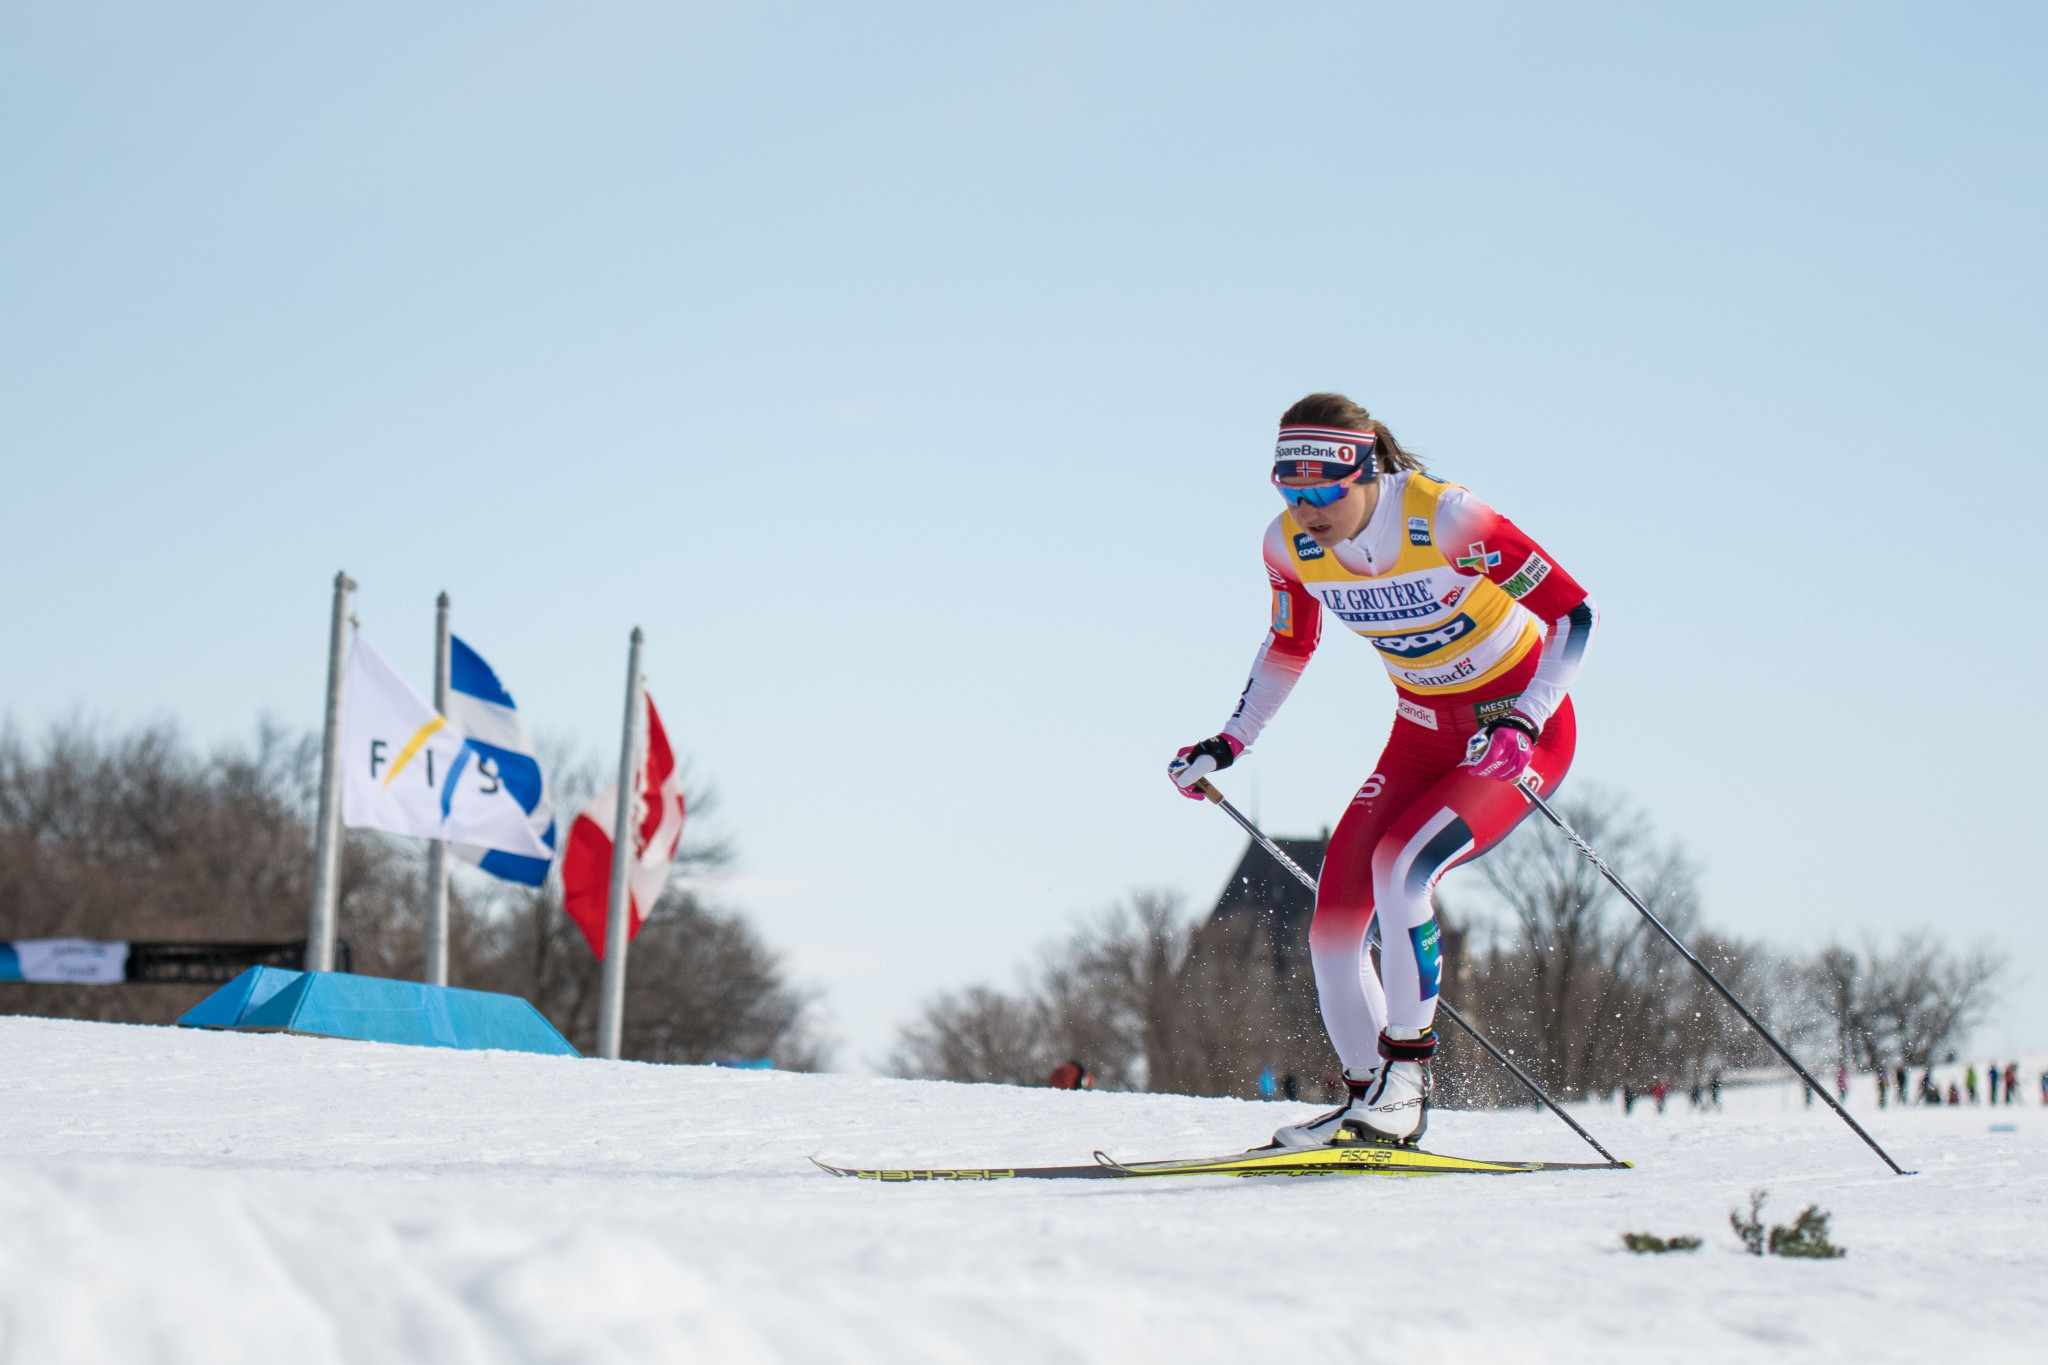 Østberg to make return to action at FIS Tour de Ski